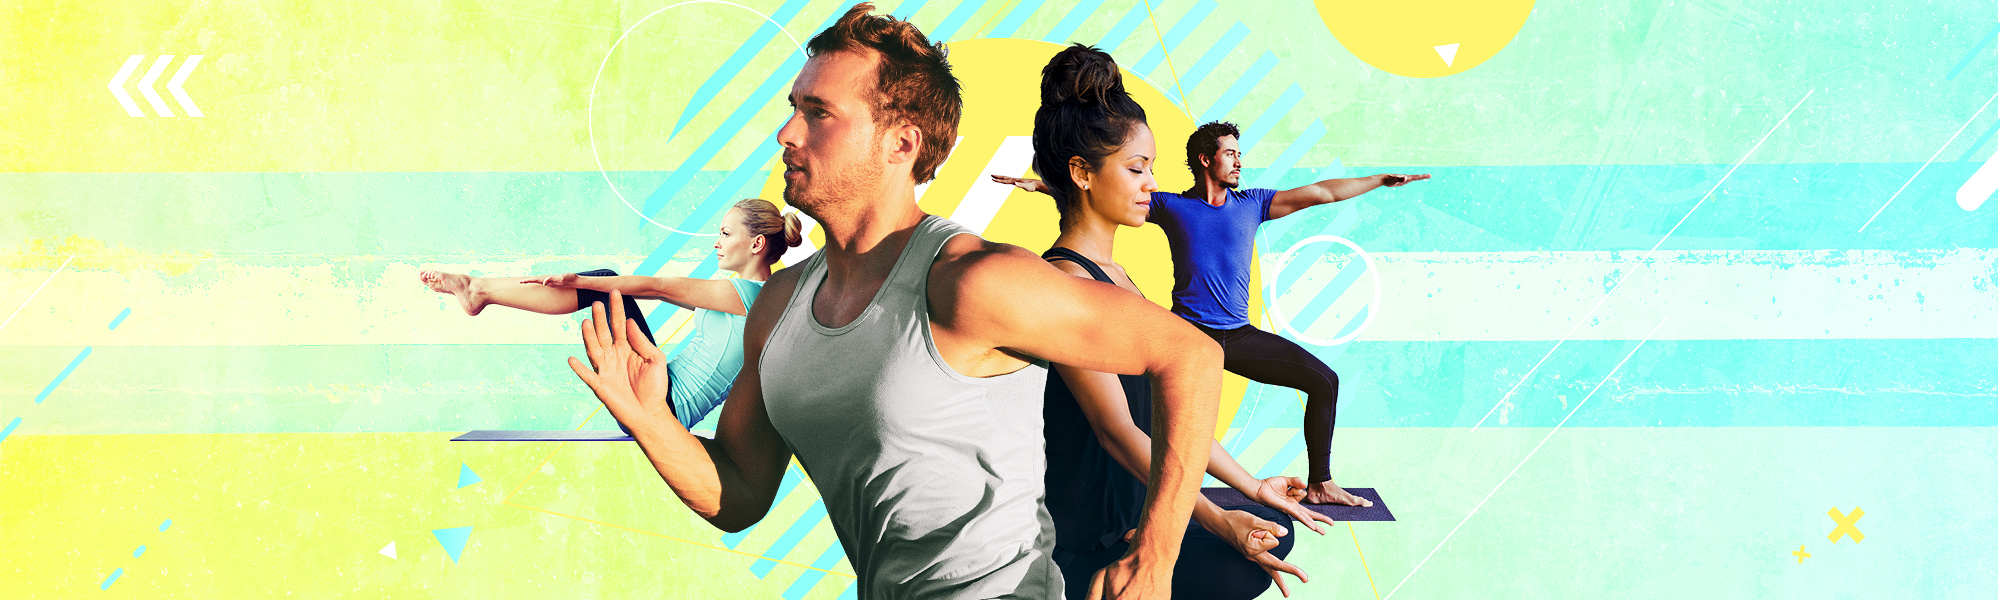 Fitness Industry Web Design